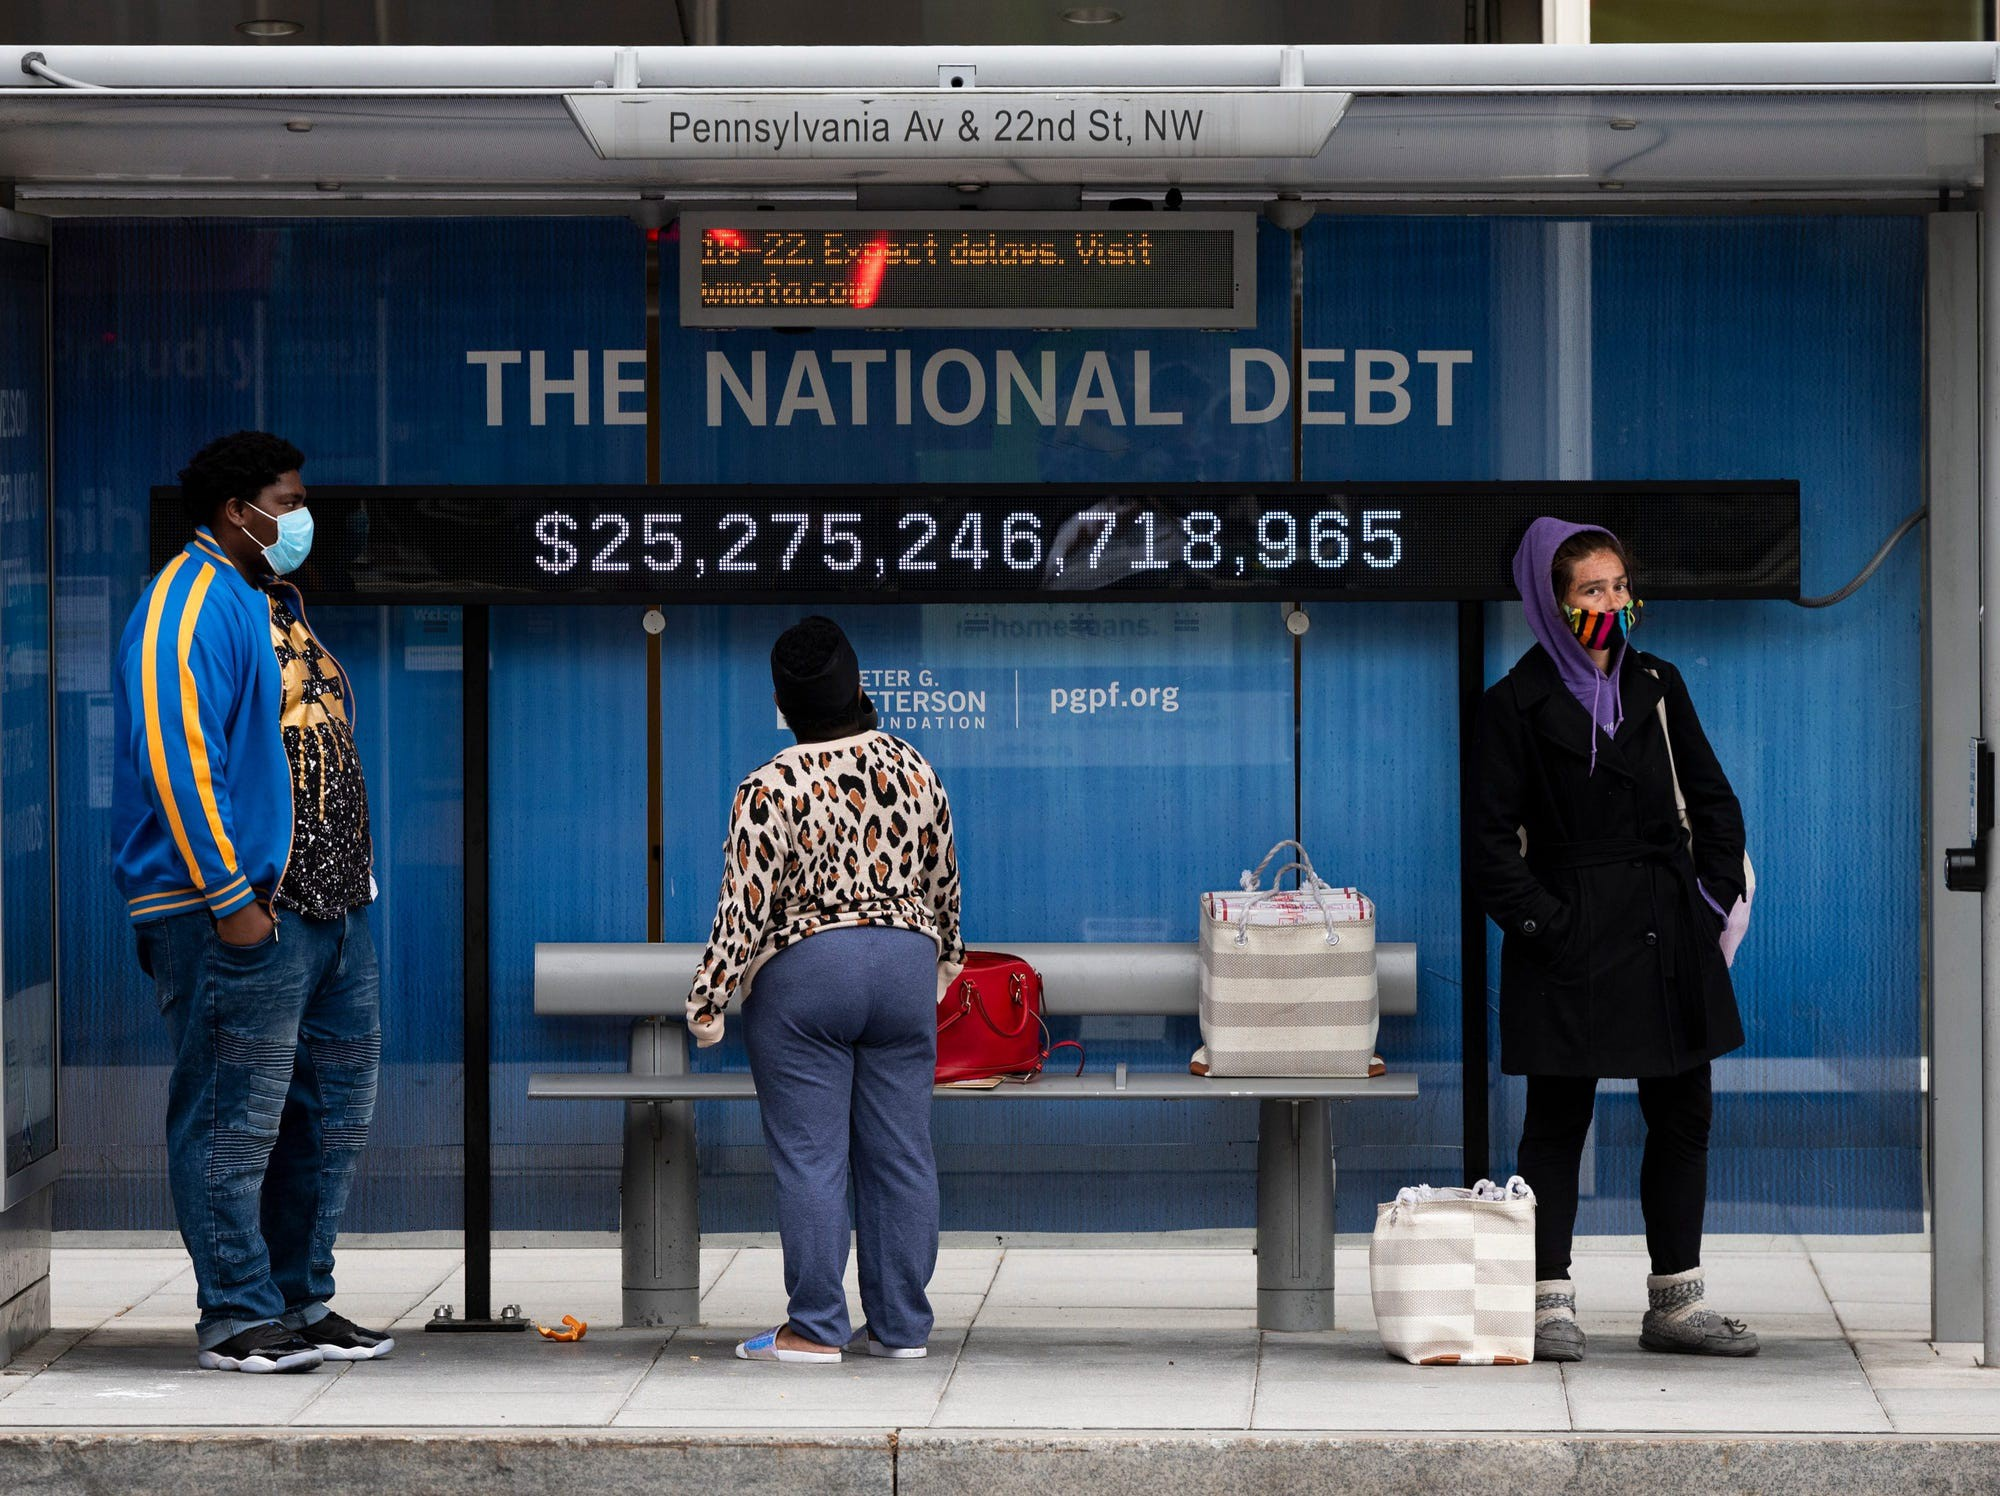 Passengers wearing face masks wait for their bus in front of a national debt display on Pennsylvania Ave. NW in Washington on Monday, May 18, 2020.